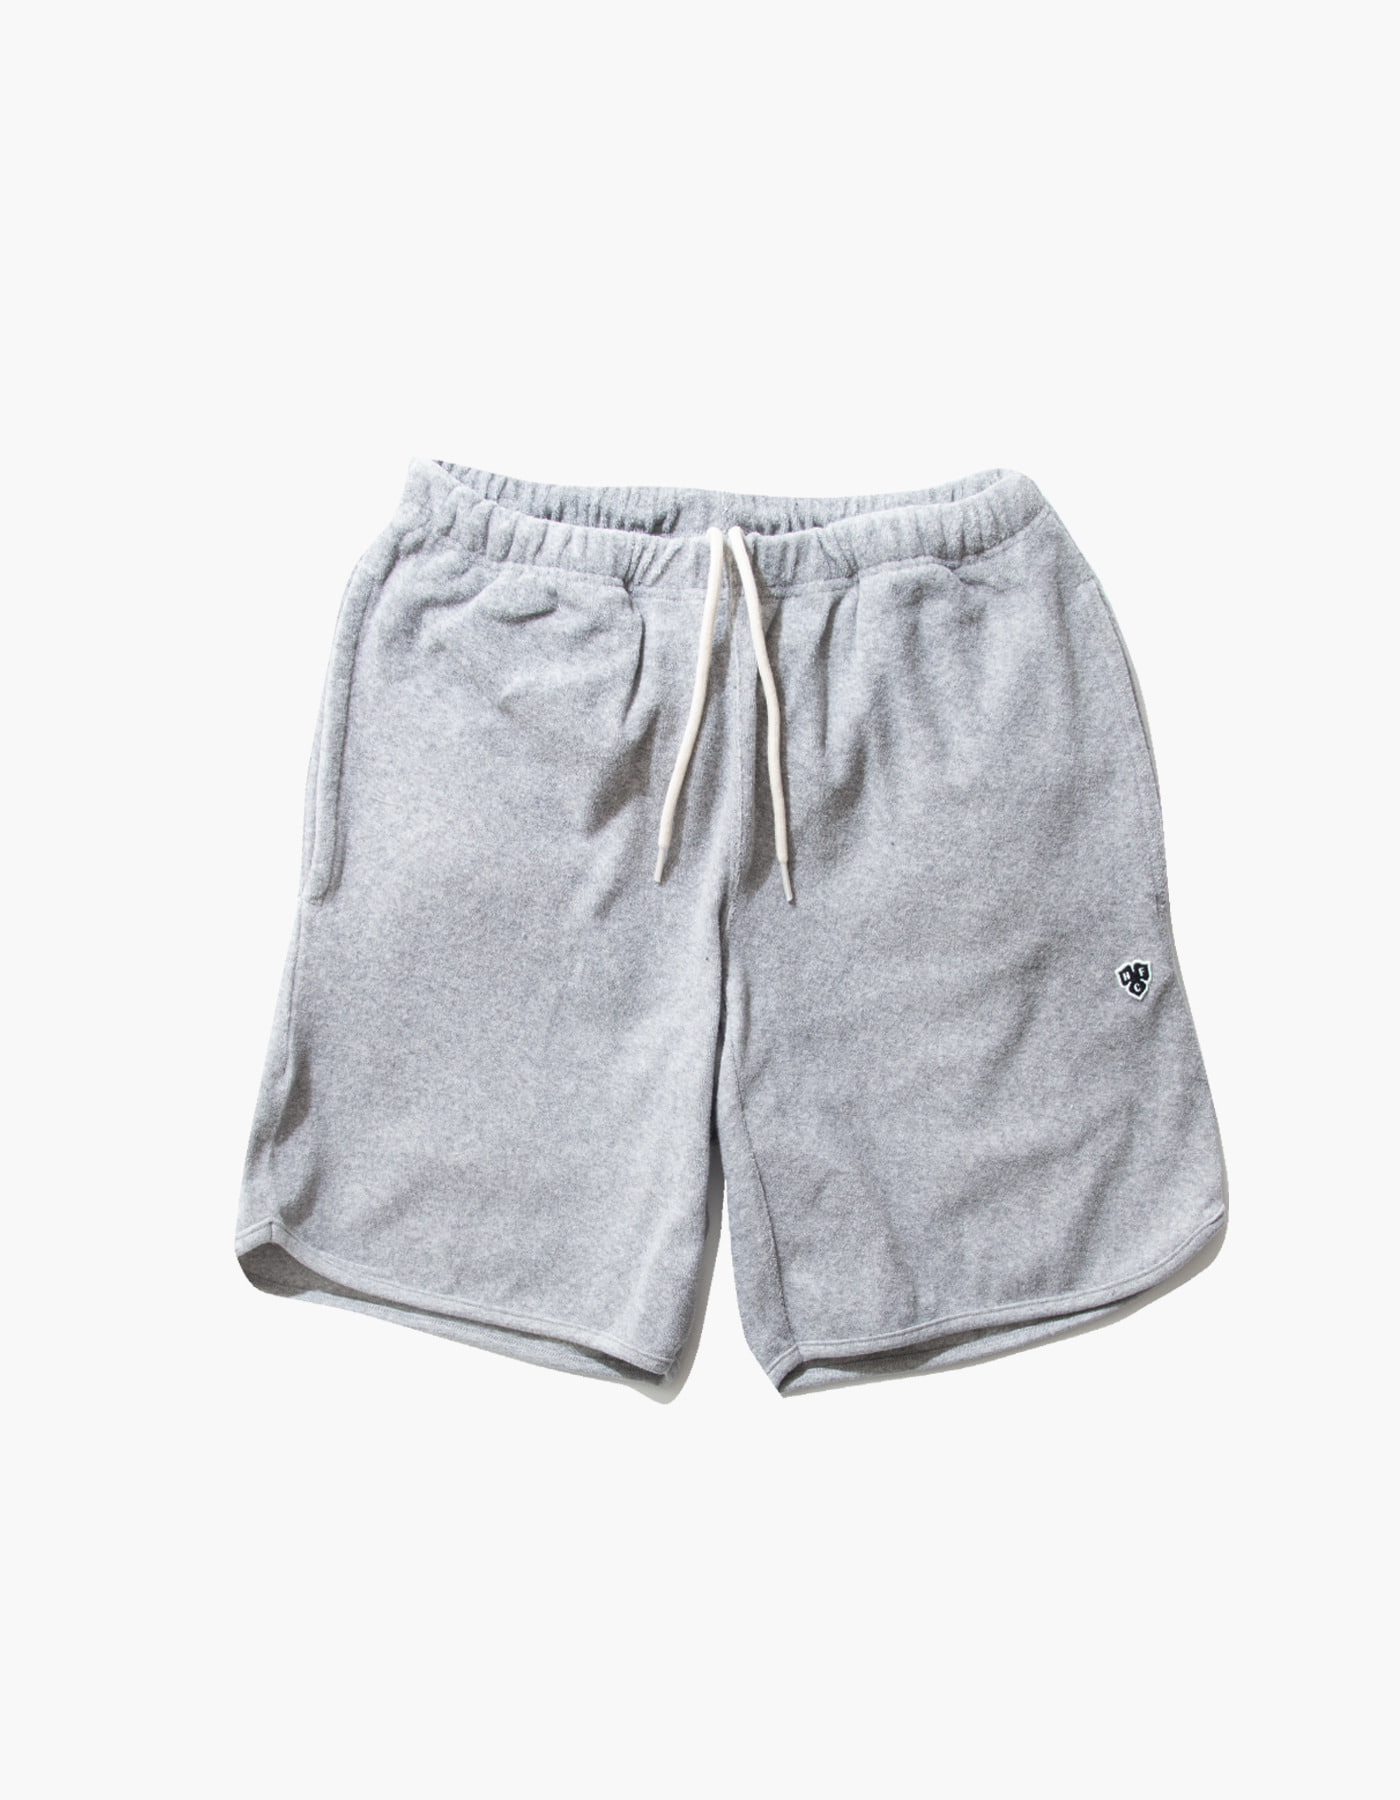 HFC CREST TOWEL SHORTS / M.GREY(5%)